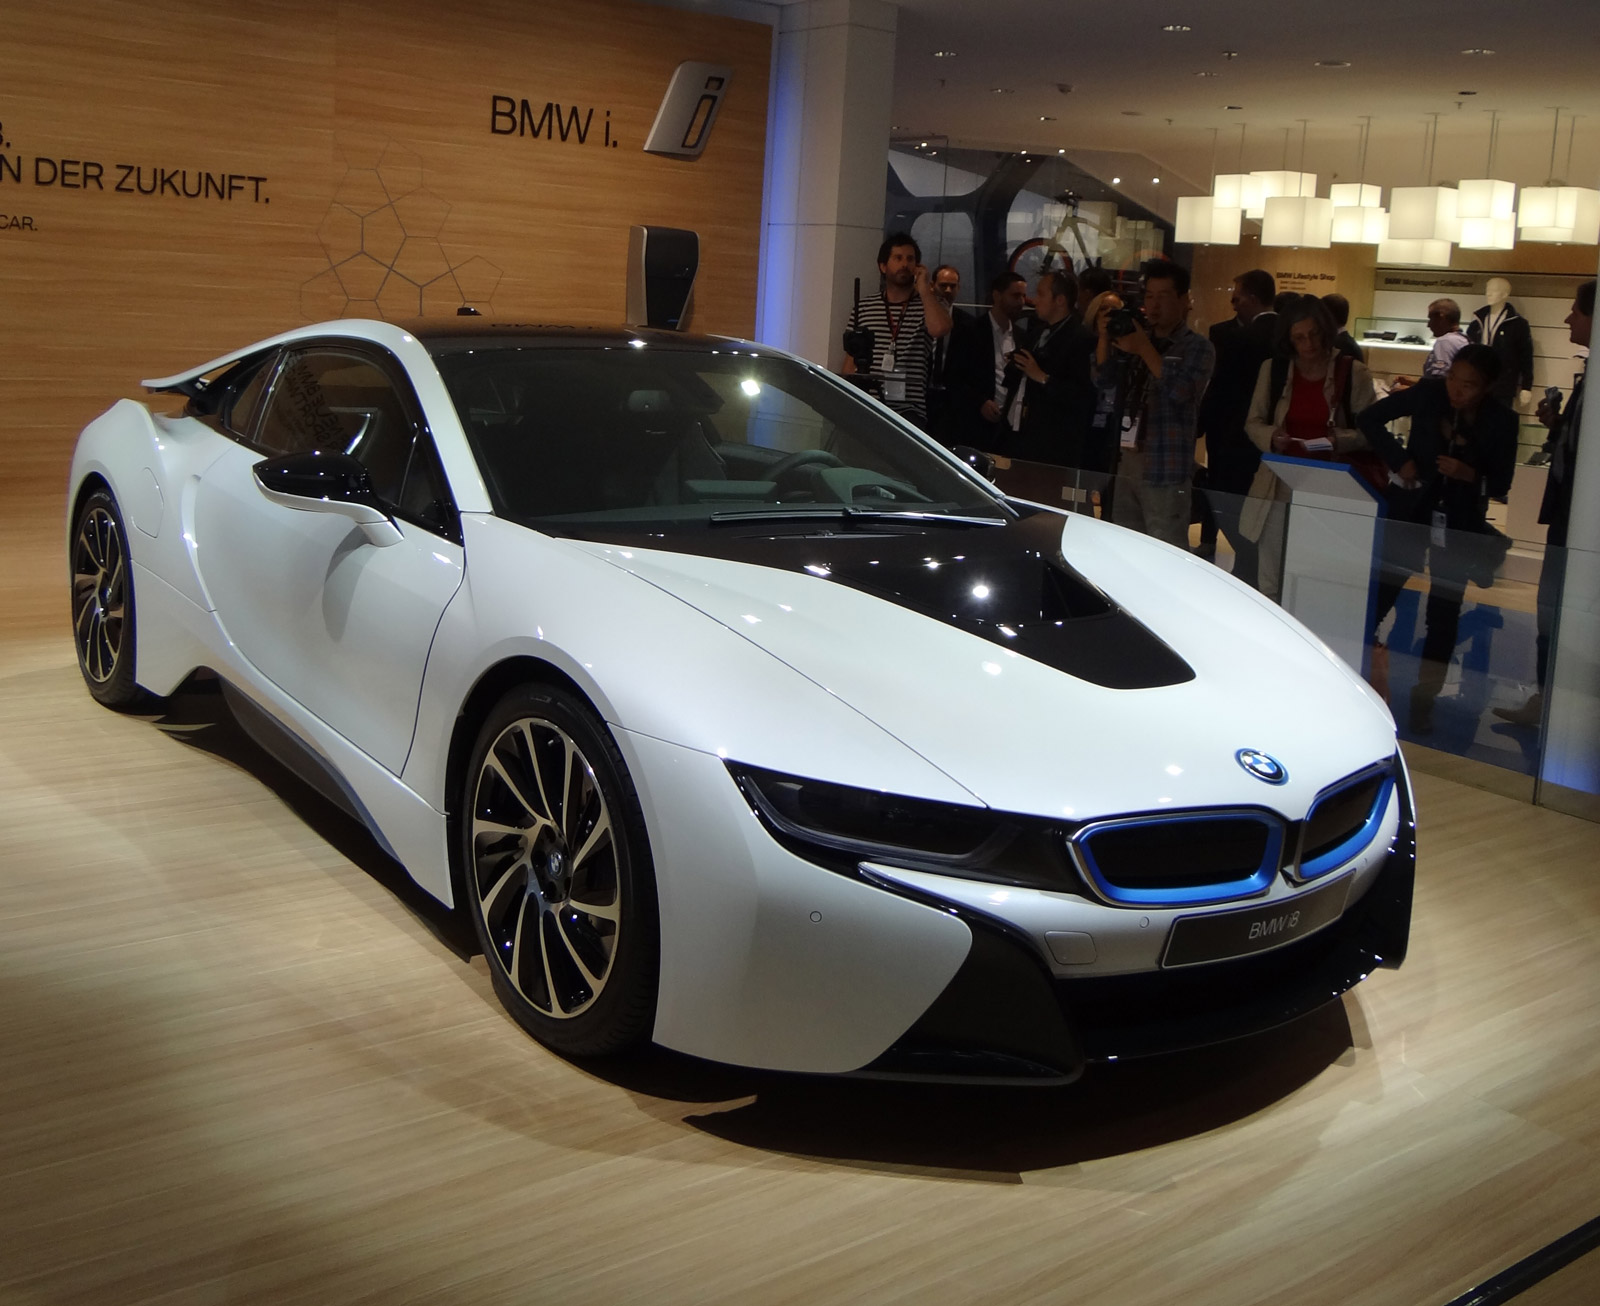 2015 bmw i8 live photos 2013 frankfurt auto show. Black Bedroom Furniture Sets. Home Design Ideas